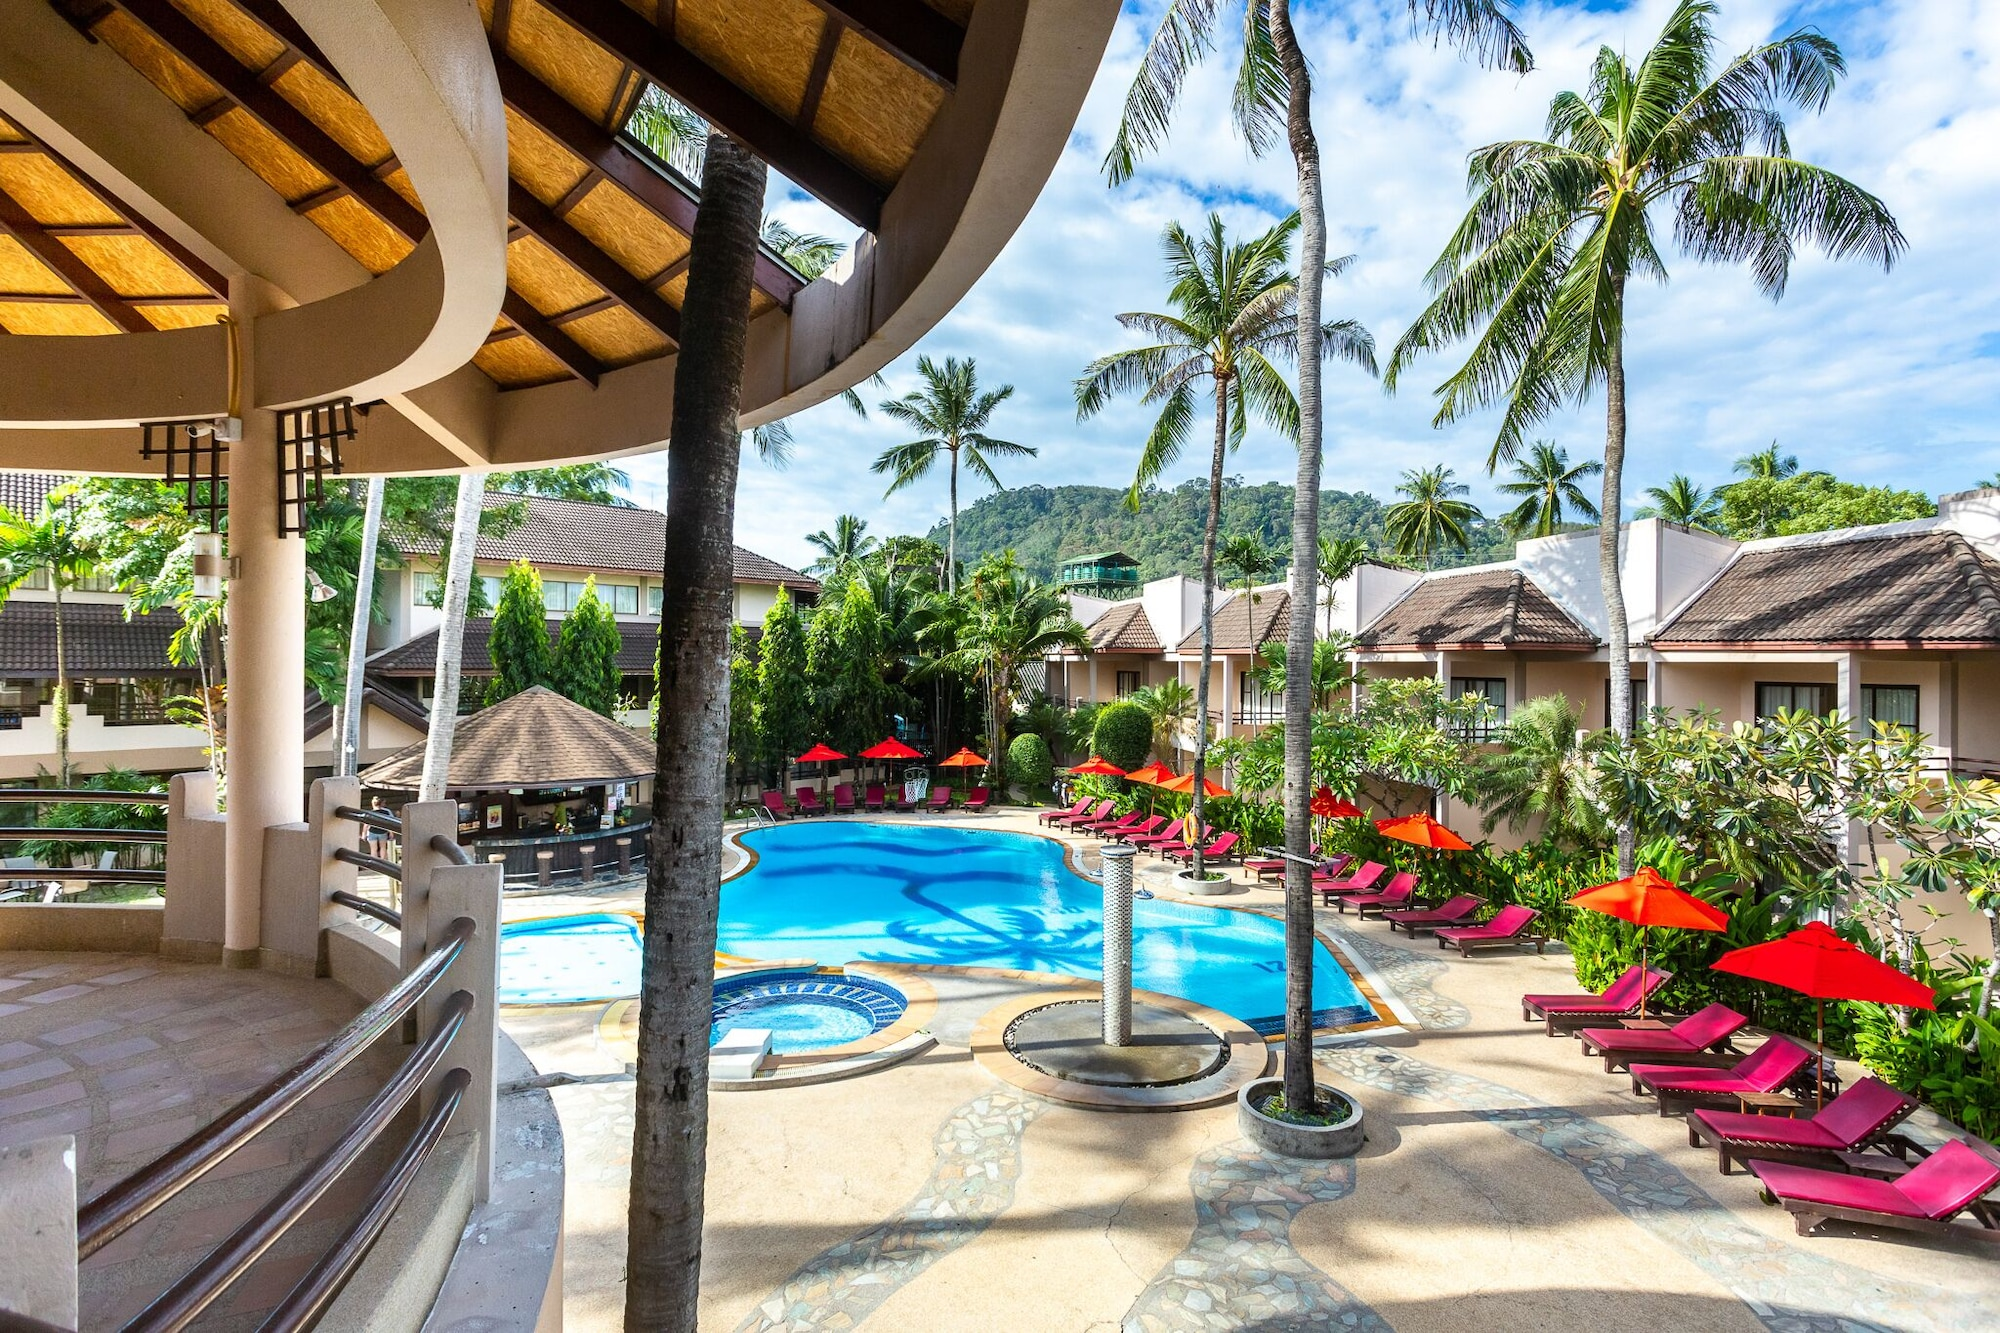 Coconut Village Resort, Pulau Phuket